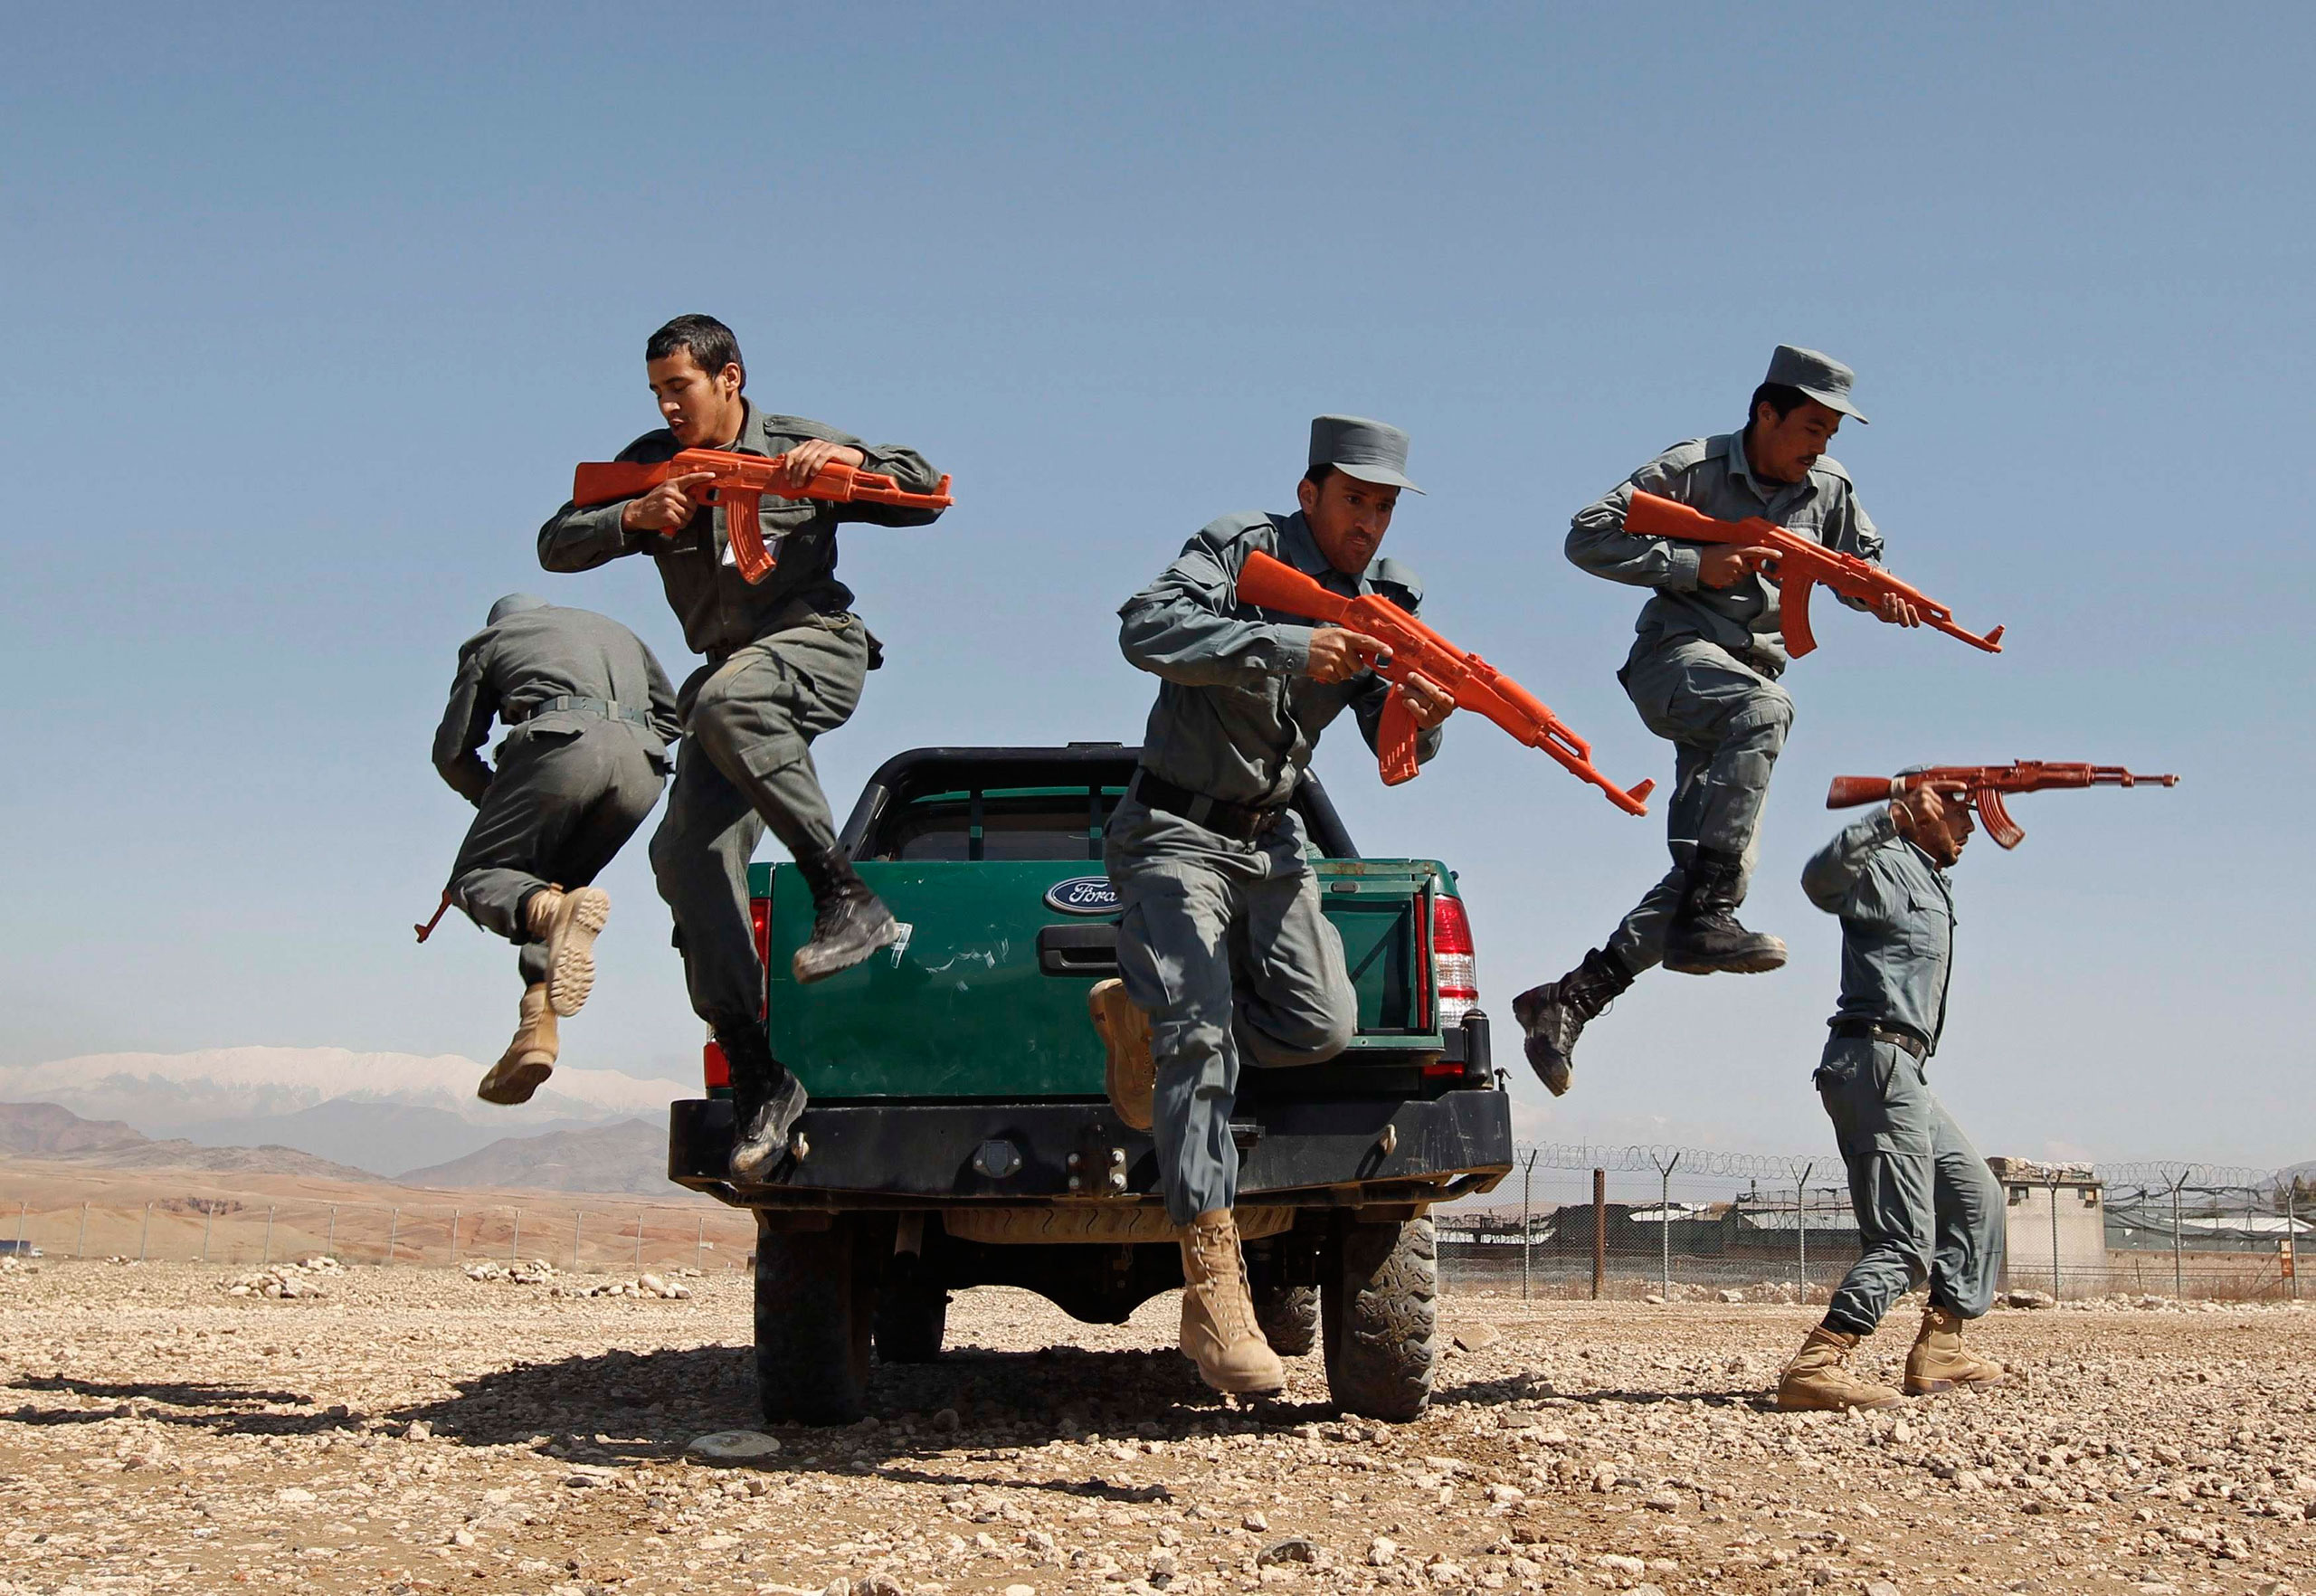 Afghan policemen display their skills at a police training center in Nangarhar Province, in the eastern part of Afghanistan. March 9, 2015.